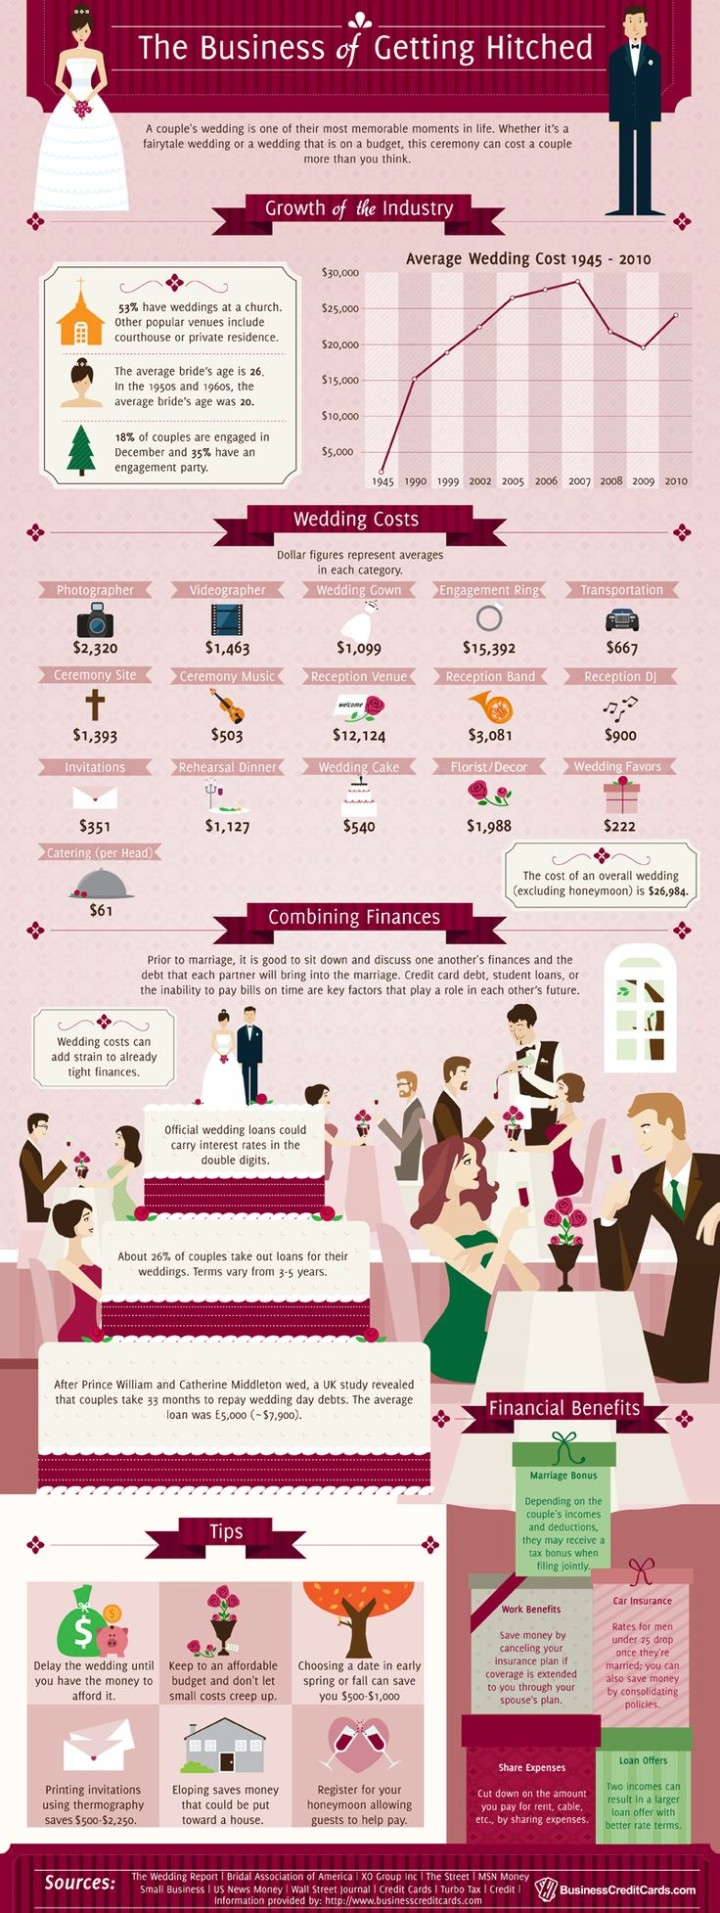 10 Wedding Planning Infographics With Interesting Facts From Professionals